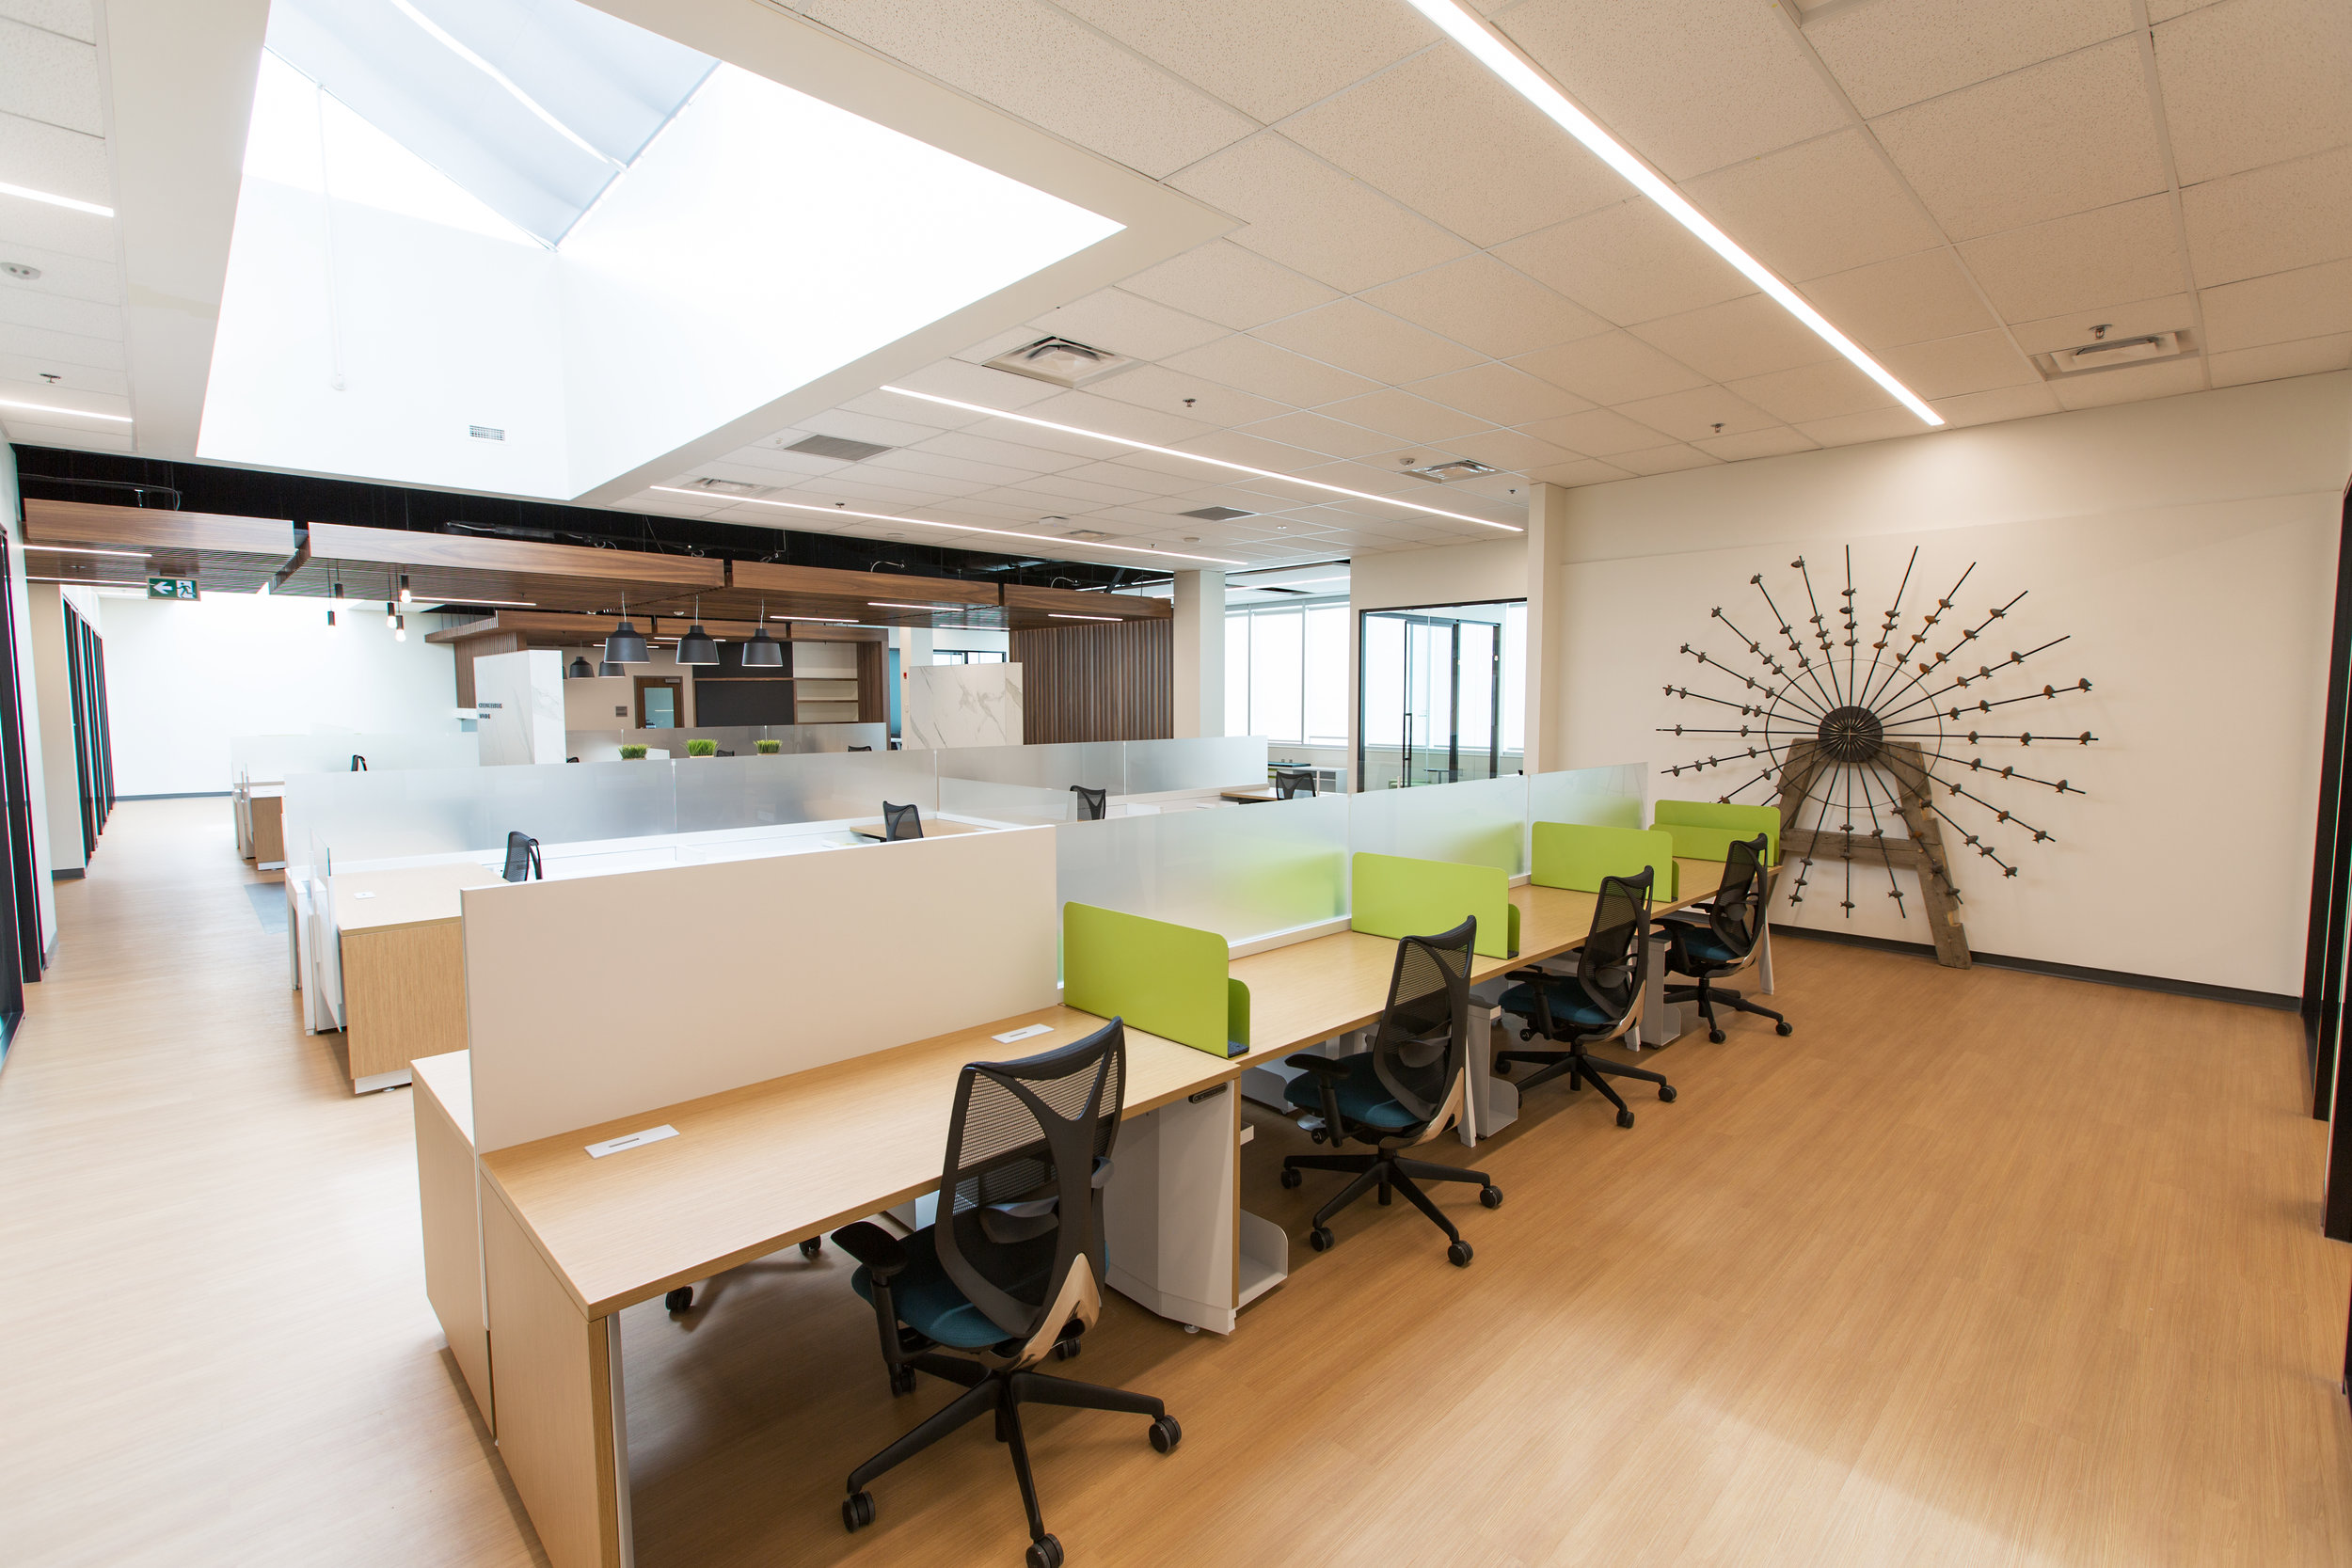 Hot Desks - Unlimited $300/monthly80 hours $150/monthly40 hours $100/monthly